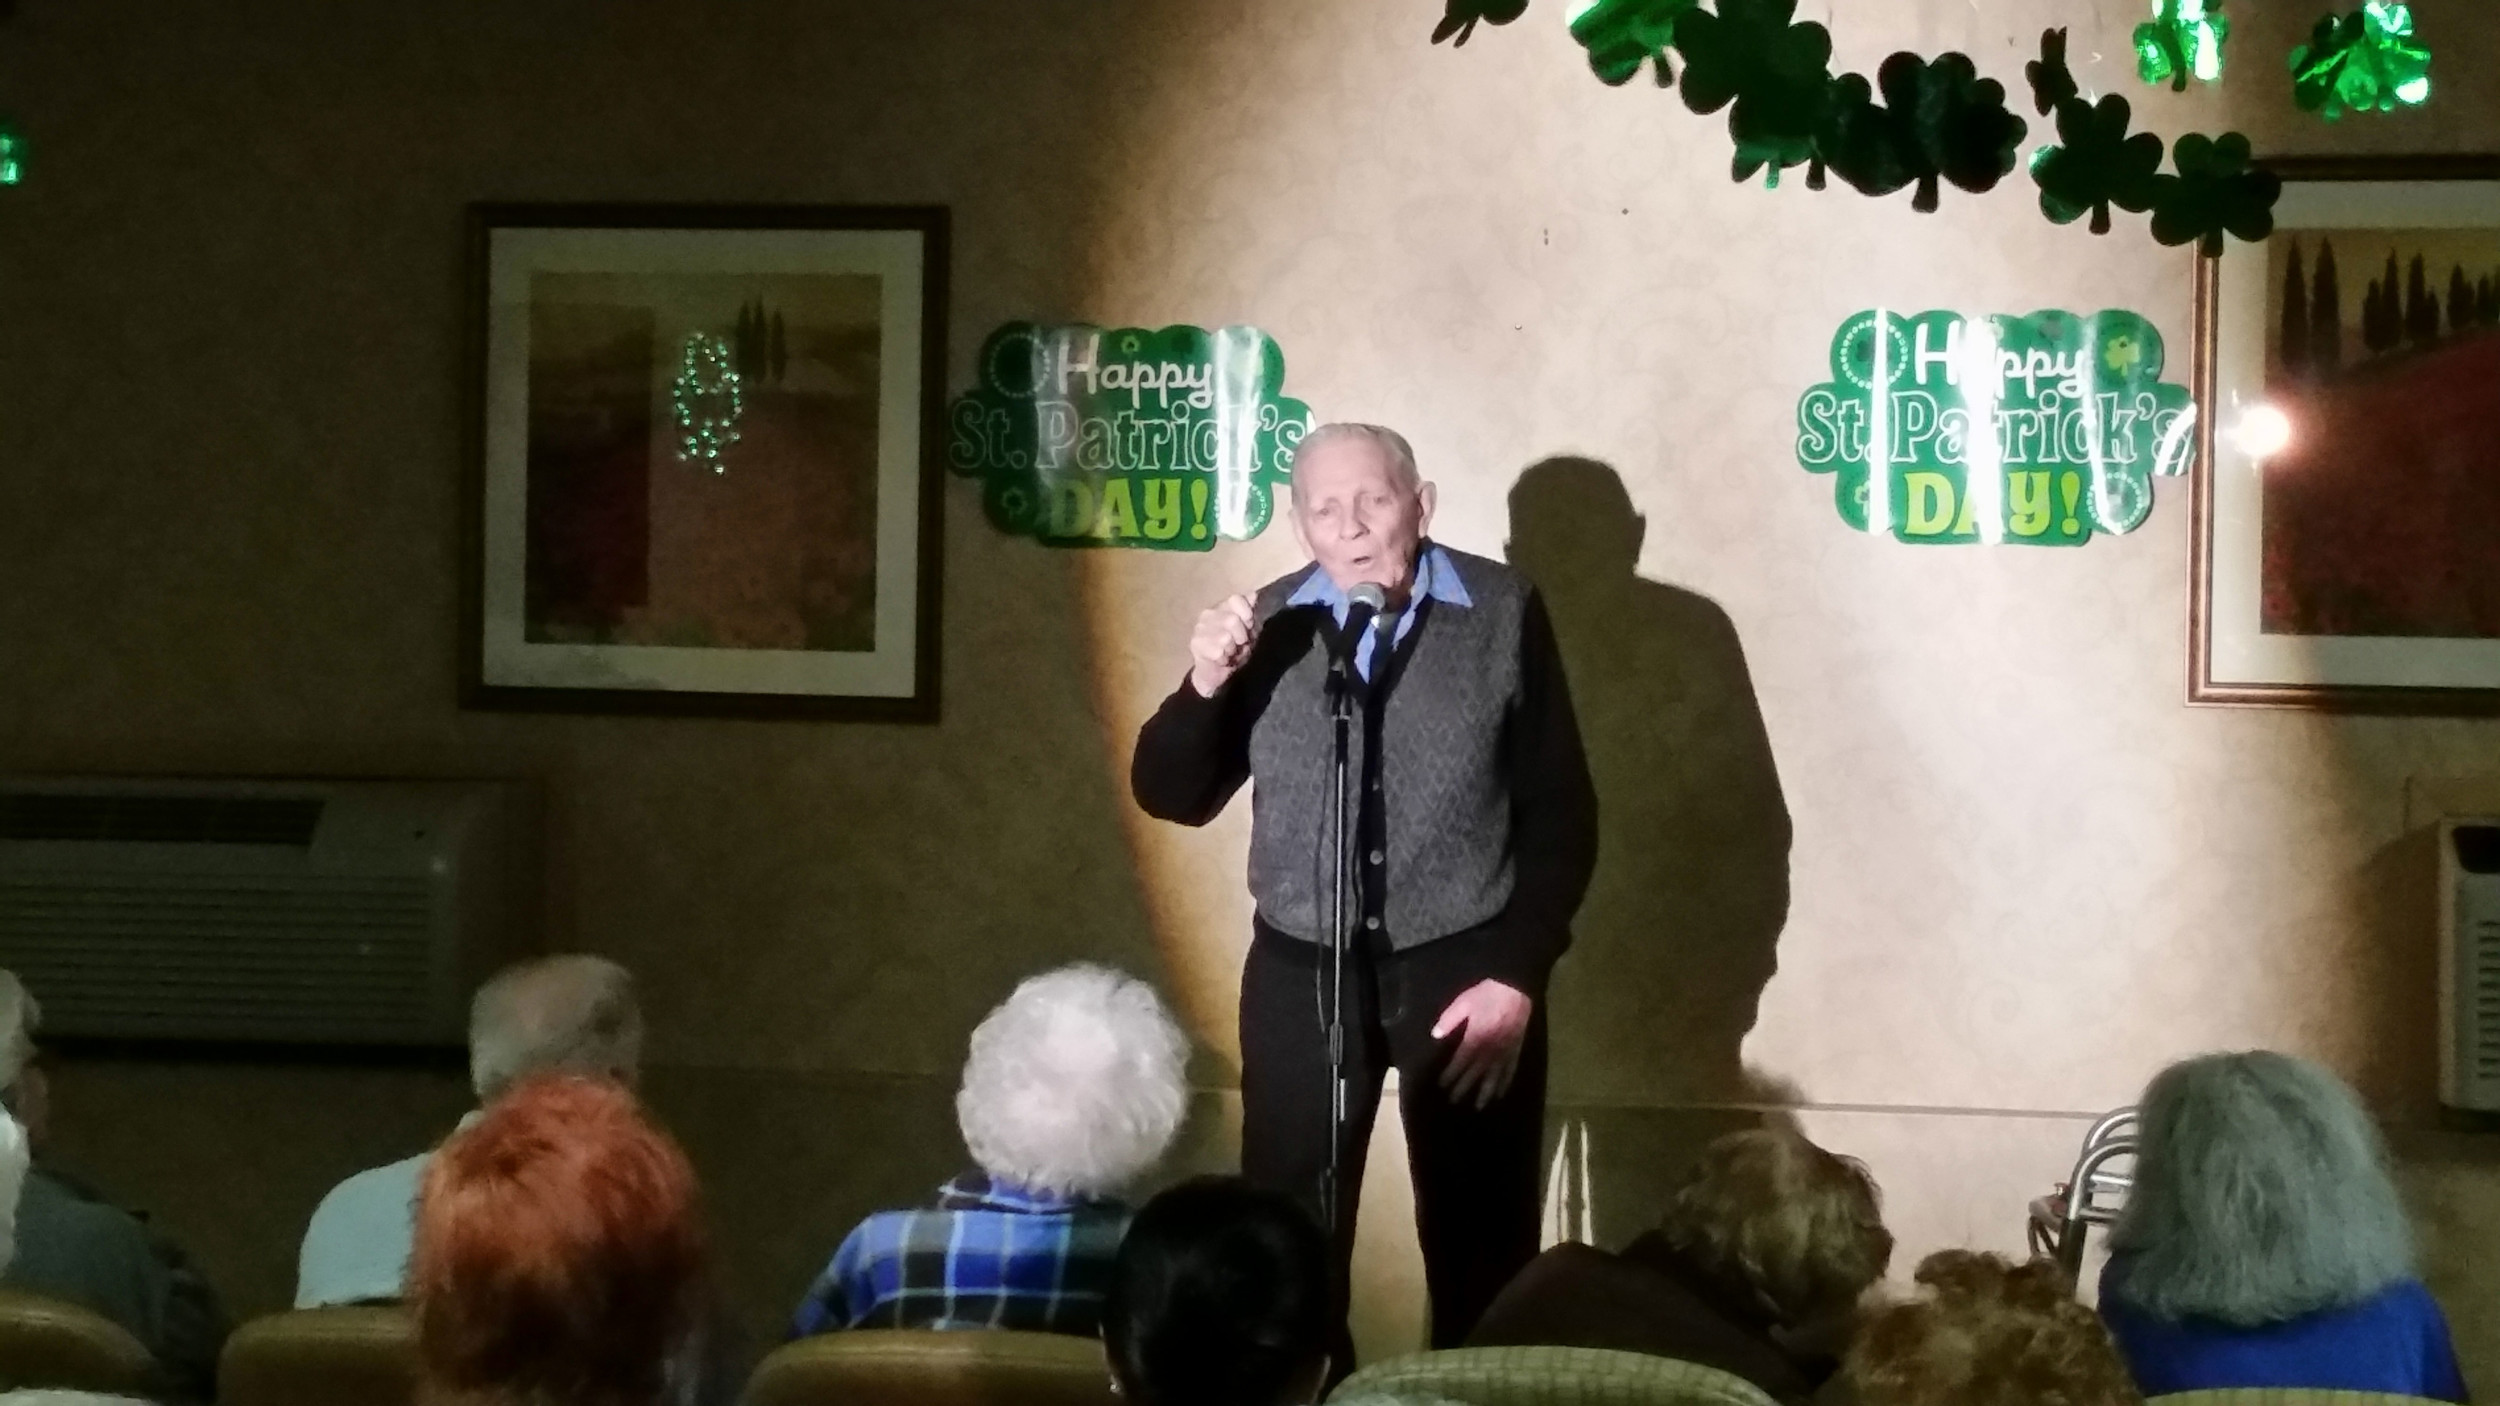 Fred Mueller, 91, headlined a comedy show at The Regency Assisted Living for the first time on March 9.